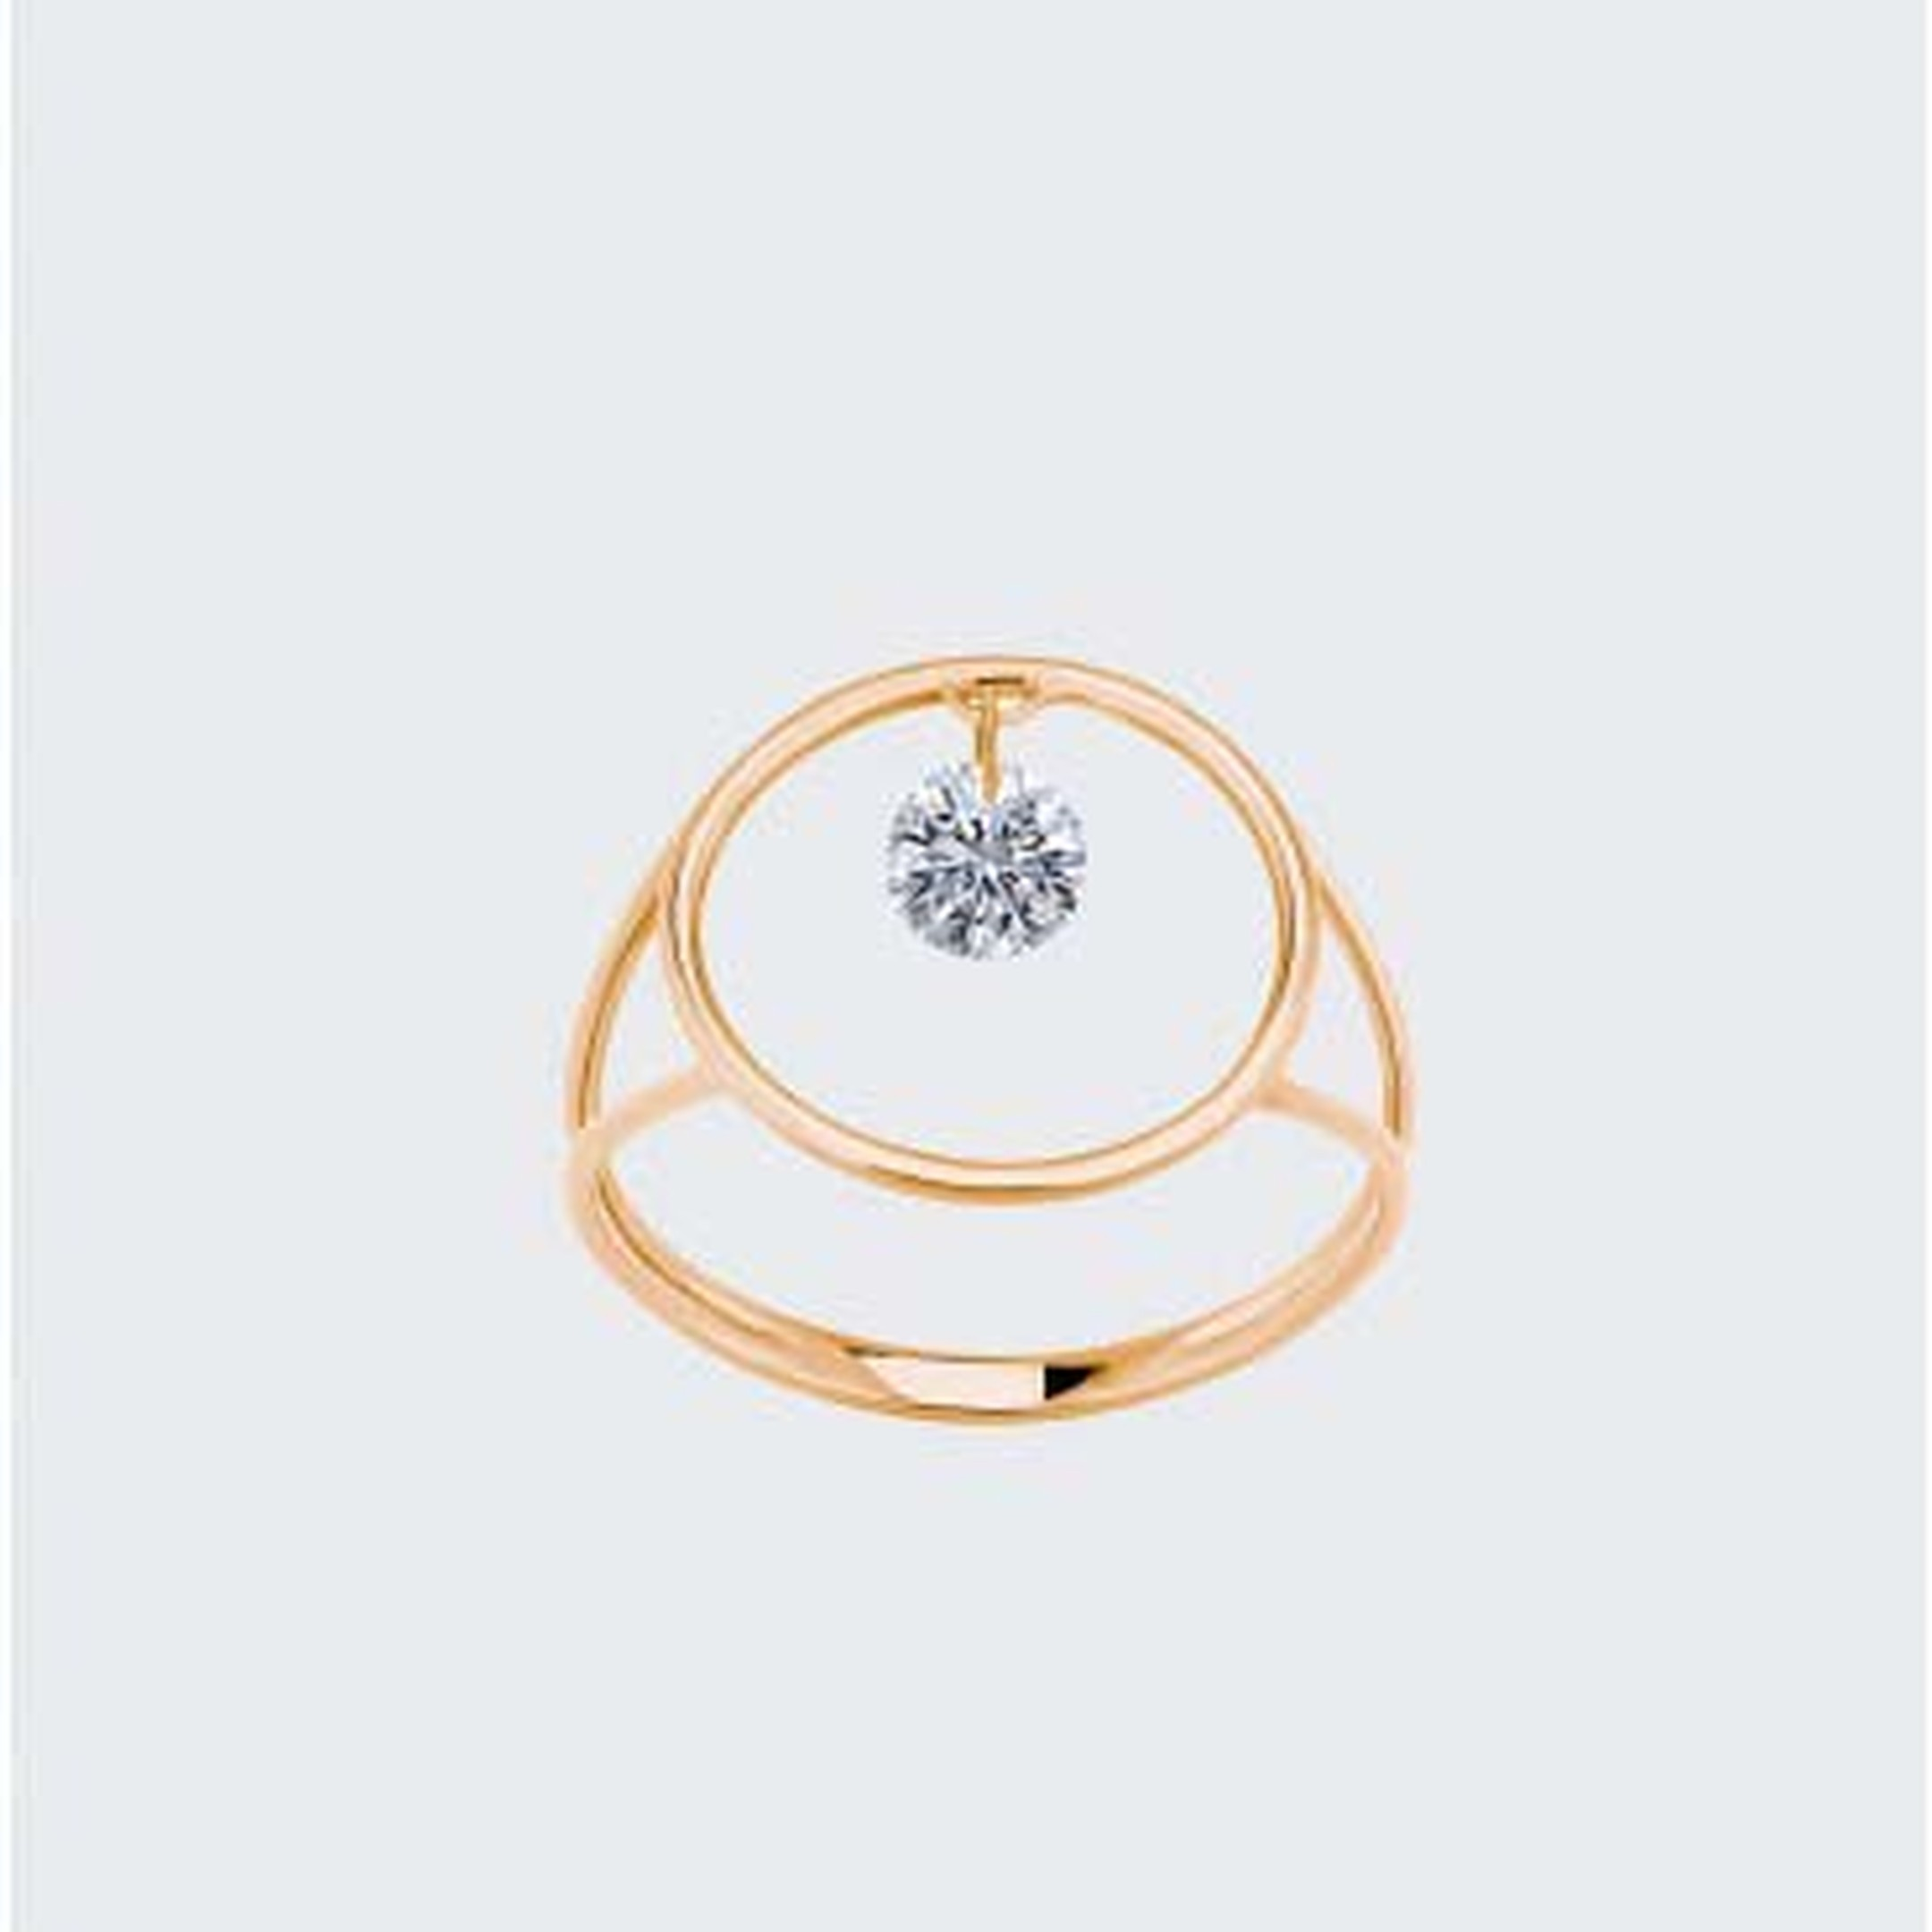 La Brune et La Blonde's rose gold Nude Diamond ring was crafted using an innovative technique that frees the diamond from a traditional setting, enabling it to be viewed from 360 degrees, optimising its brightness.